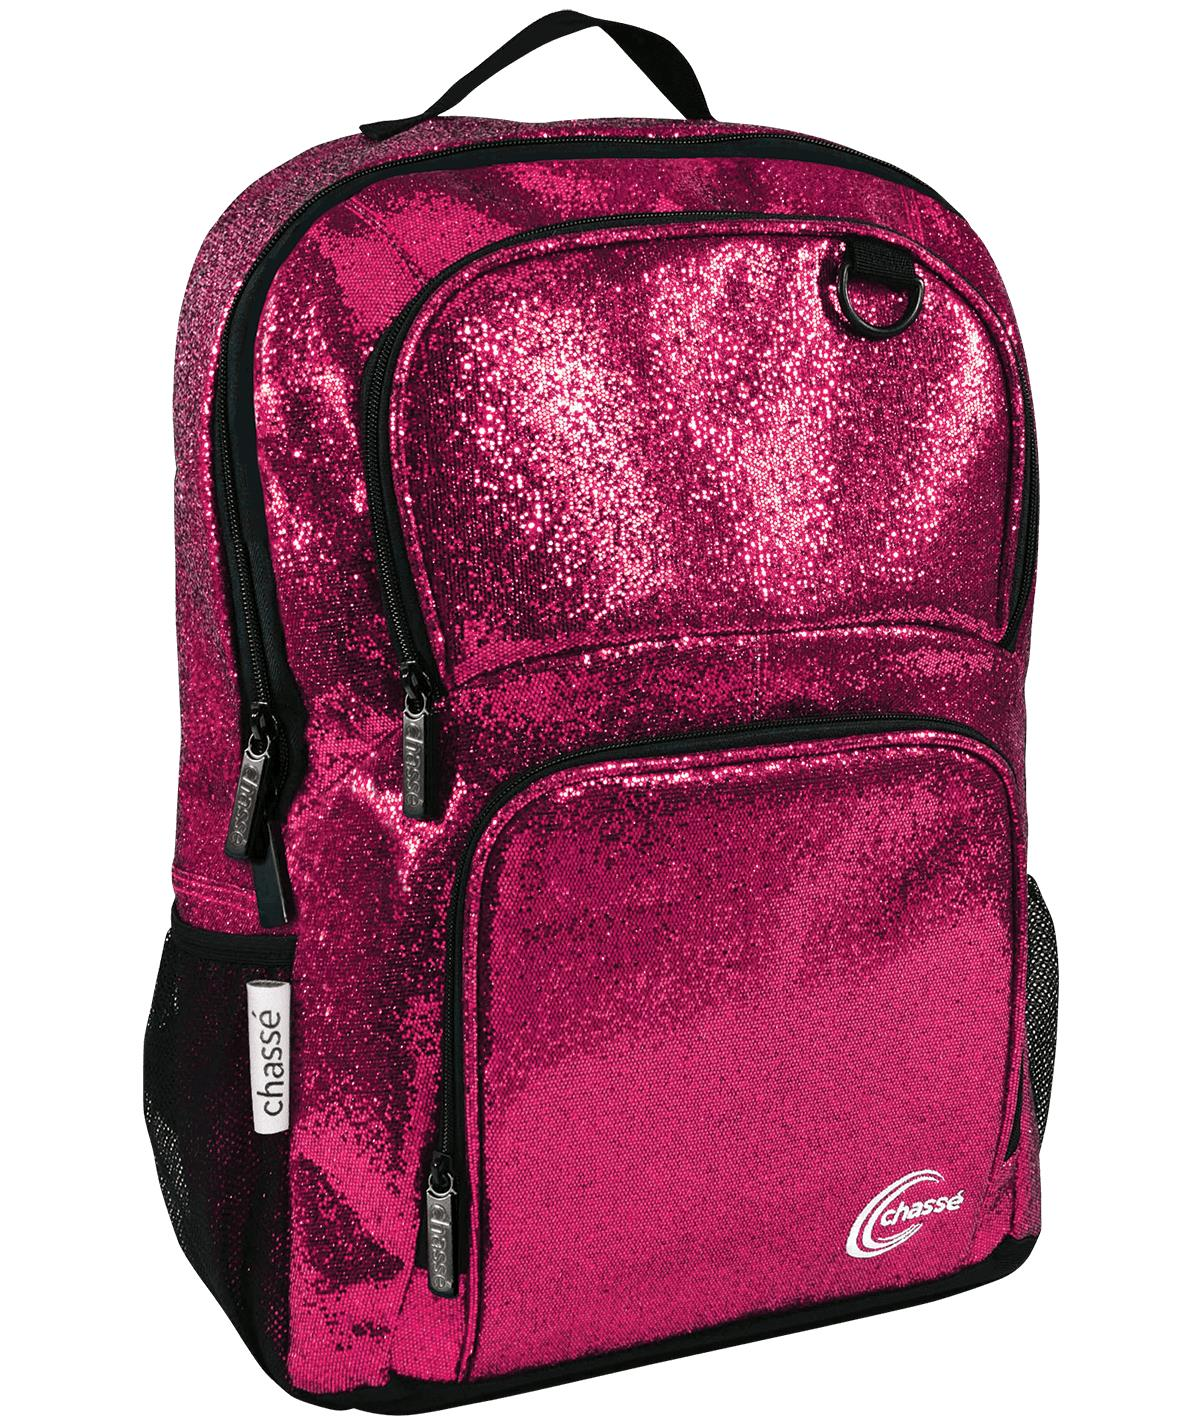 Chassé Glitter Backpack